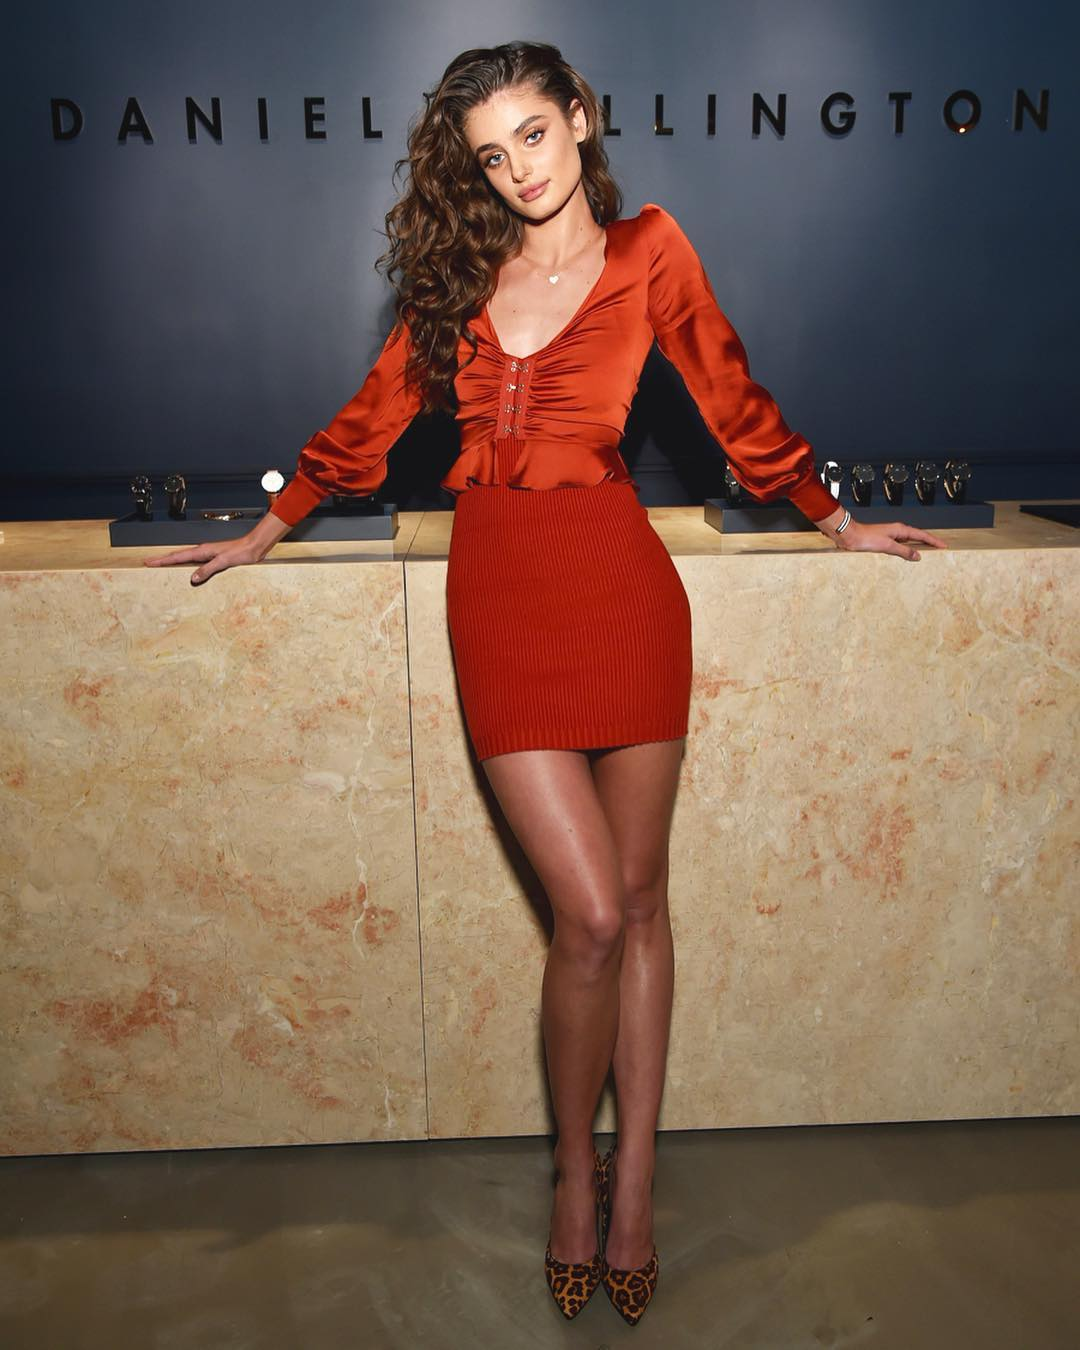 Taylor Hill Wearing Red Orange Outfit During Daniel Wellington Store 2019